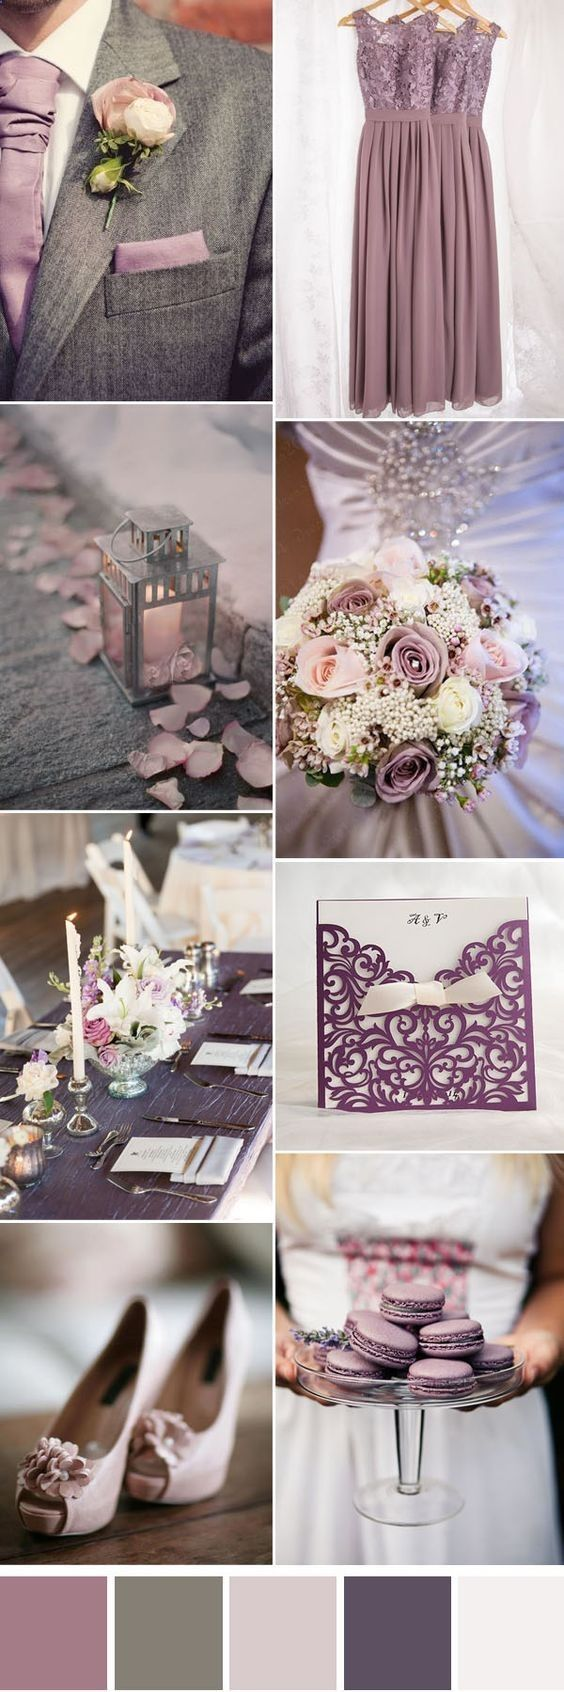 Light up wedding decorations february 2019 Rustic Wedding Ideas and More best Wedding Details images